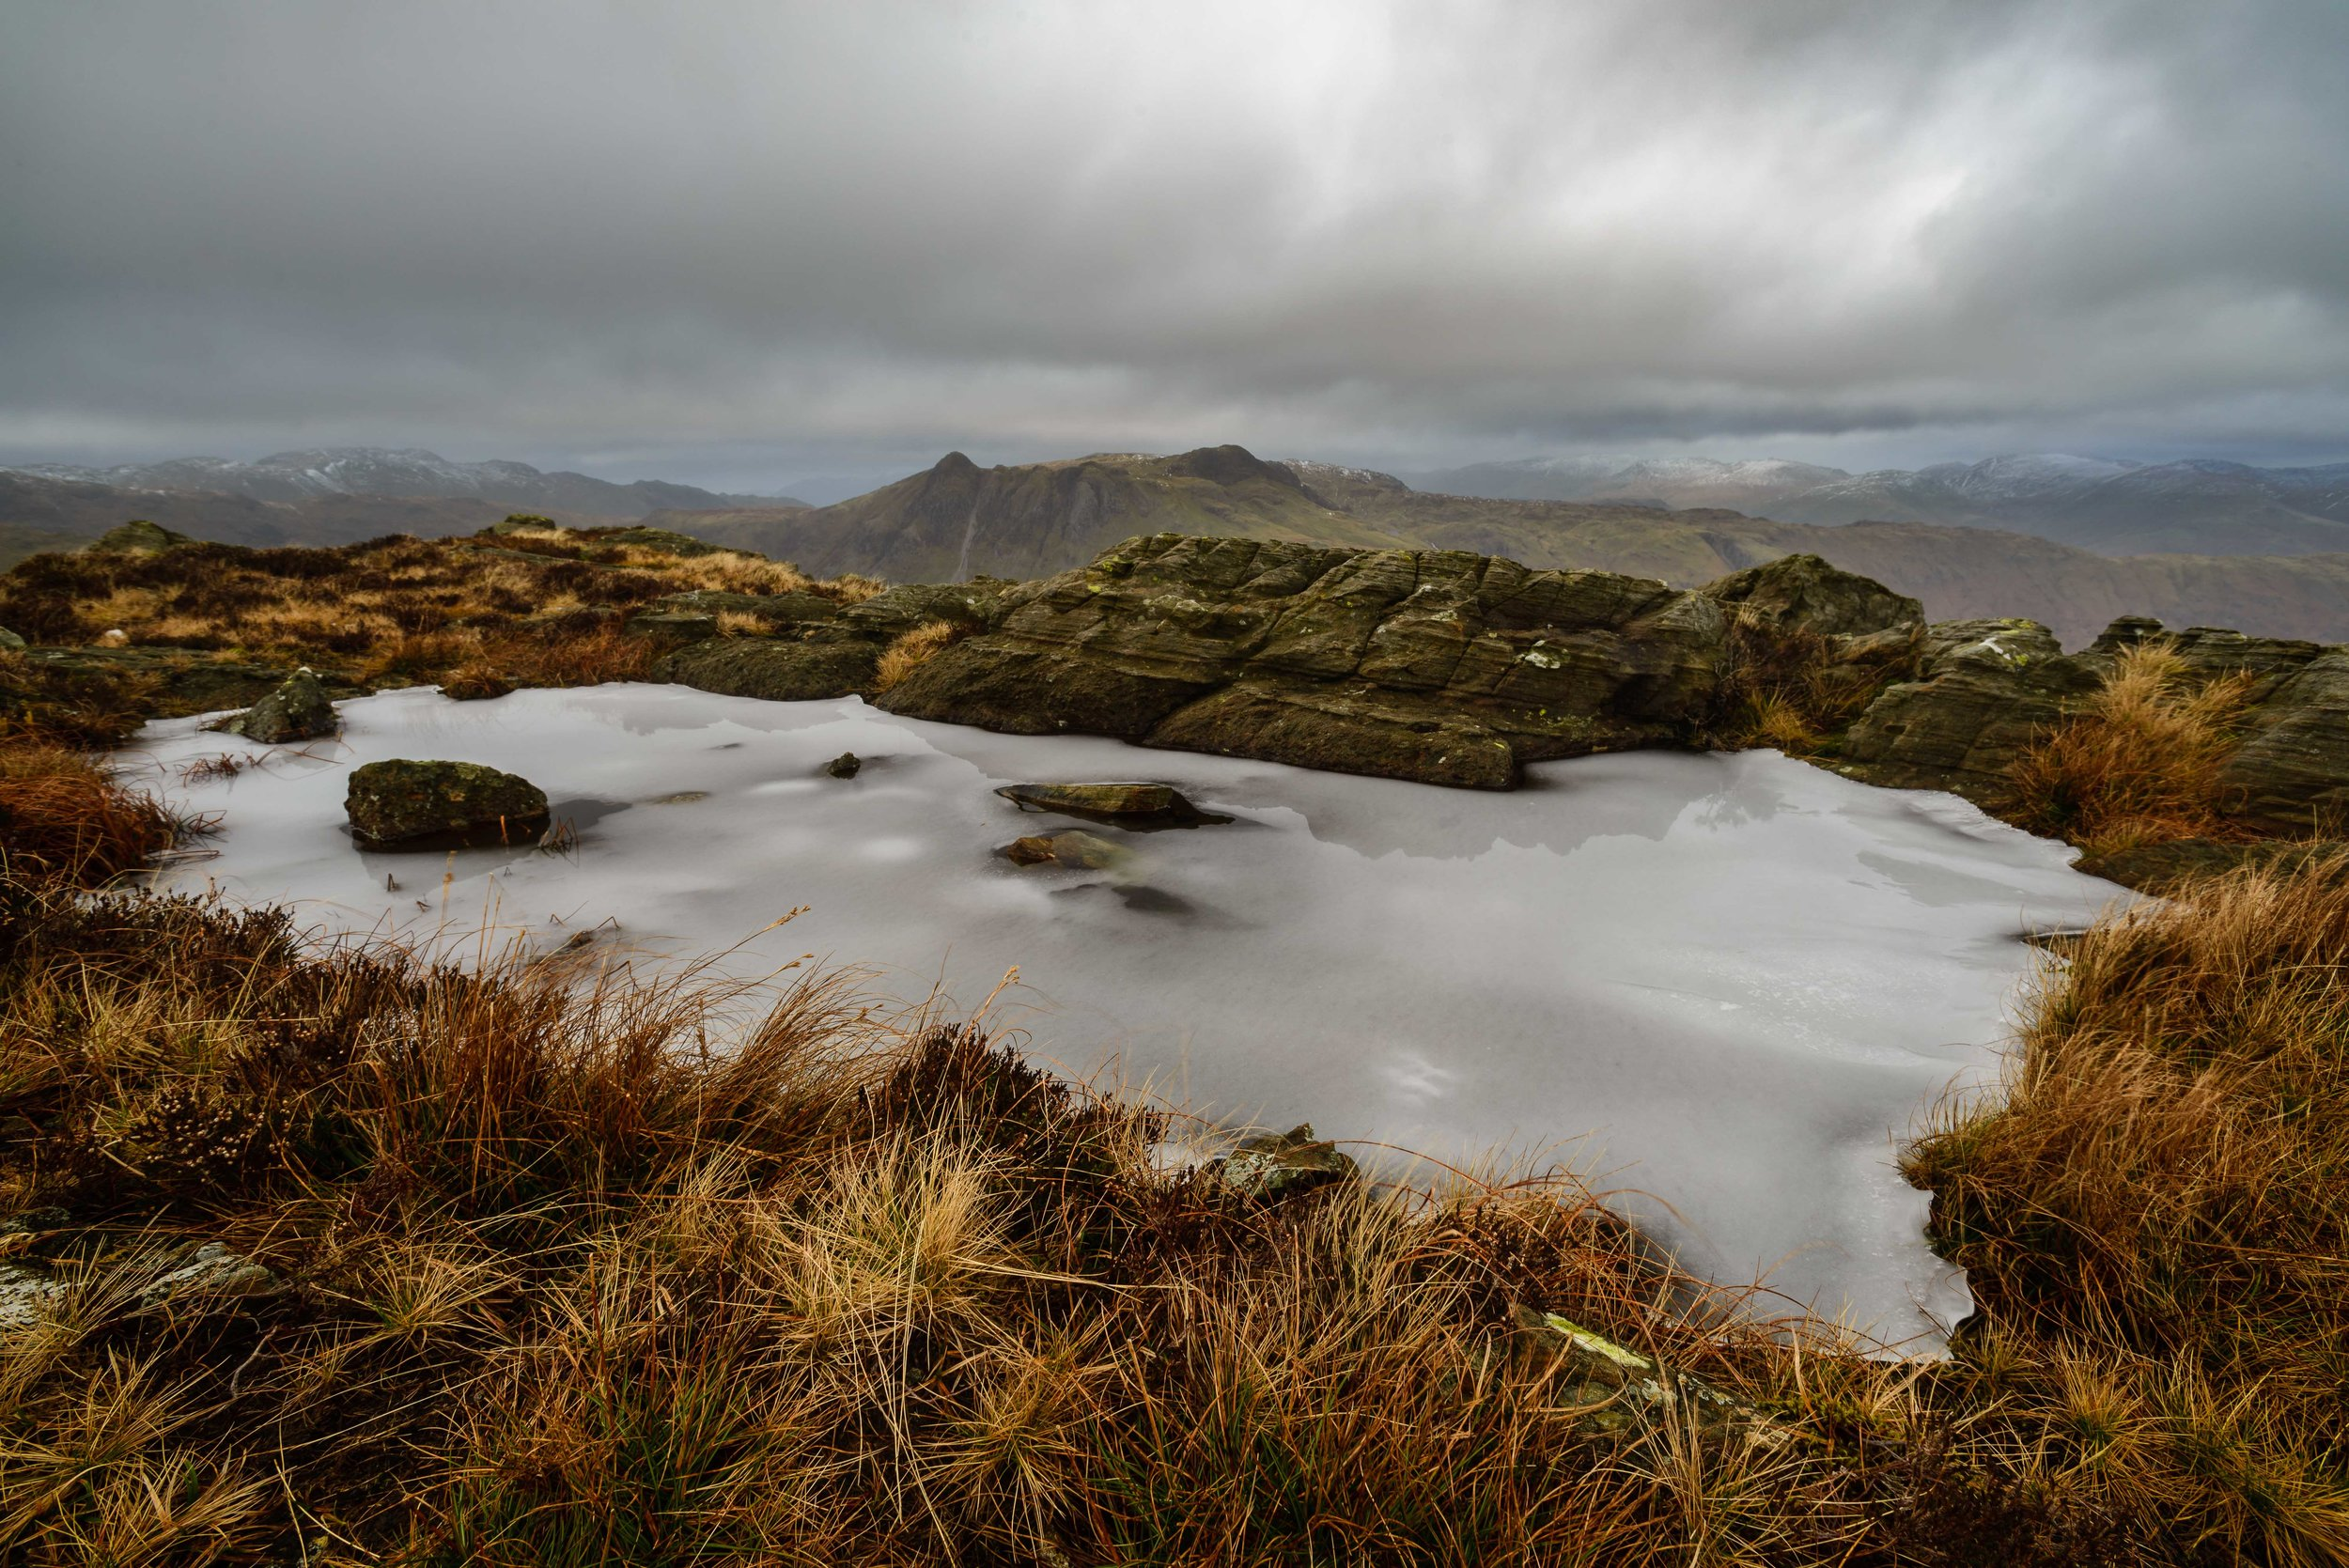 Tiny frozen tarn with the Langdales in the background.